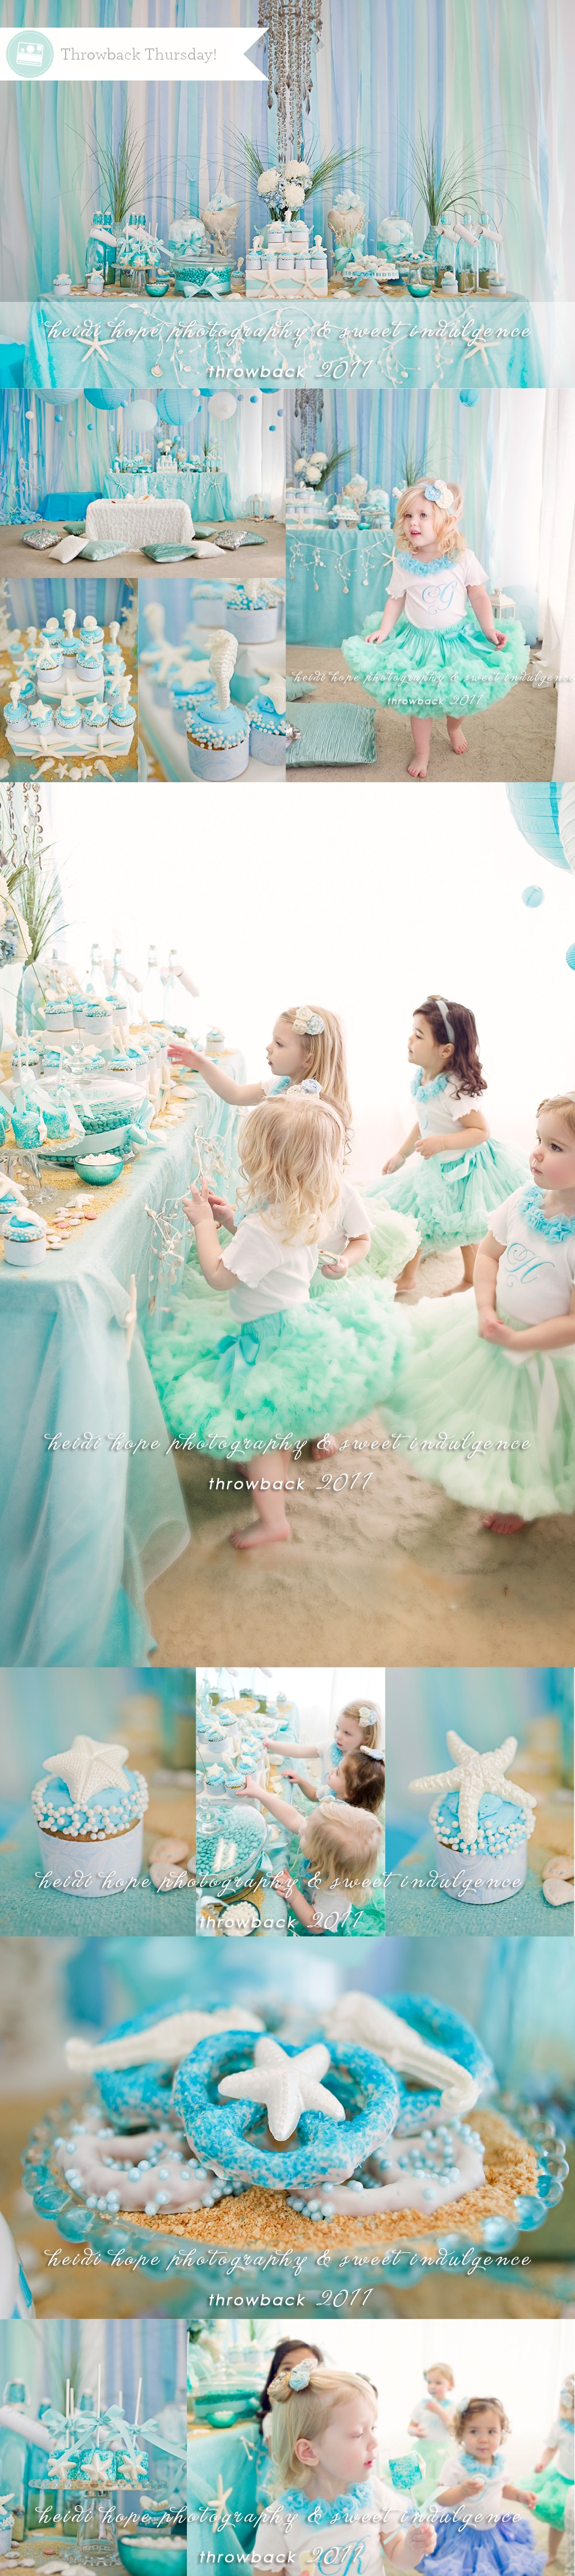 mermaid-pettiskirt-aqua-party-mint-children's-photographer-proof-1